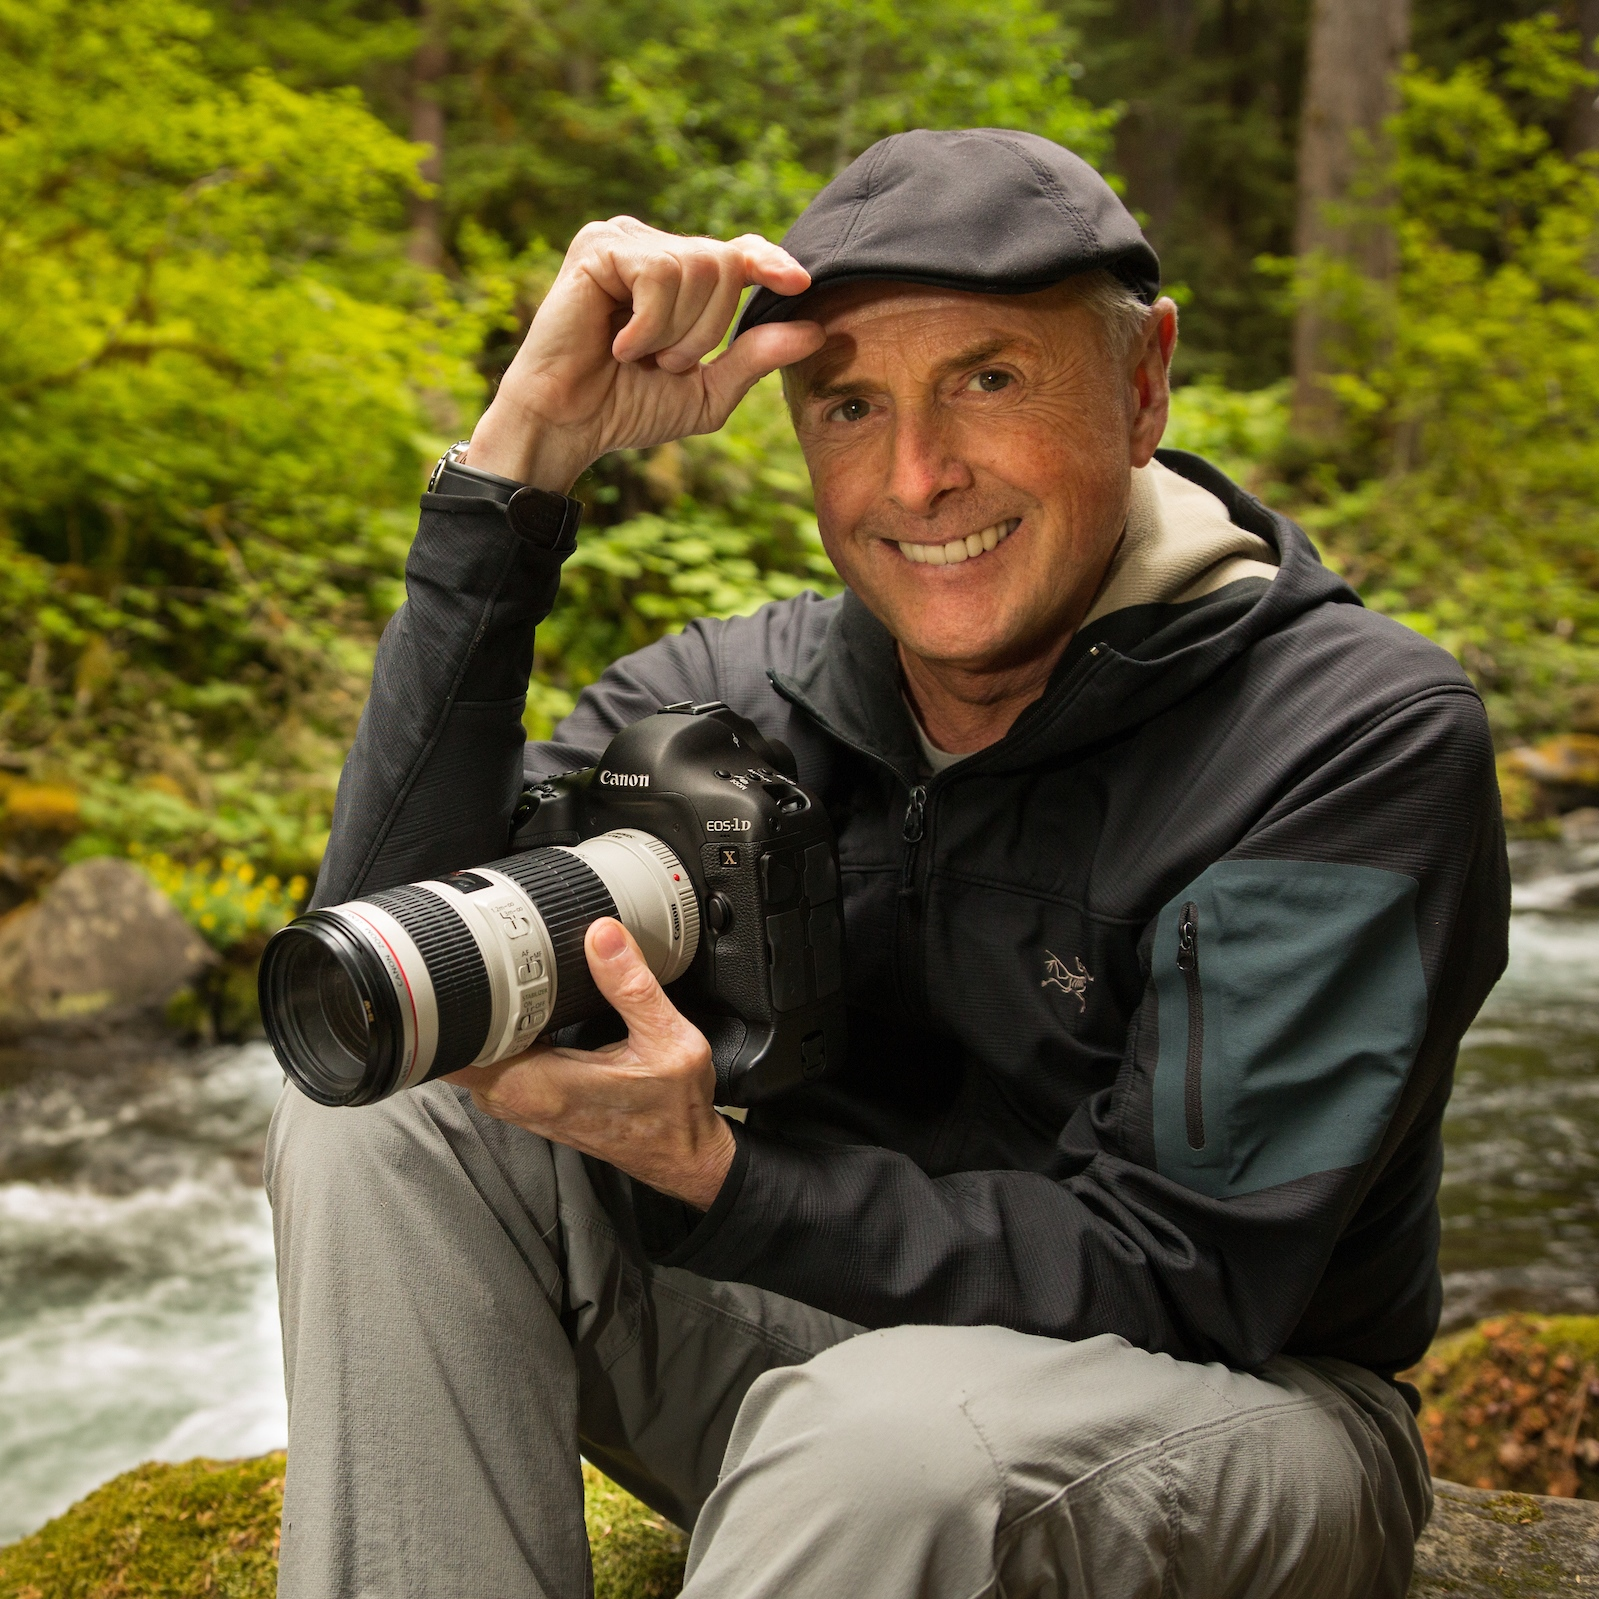 Art Wolfe - An icon of conservation photography and videography, award-winning photographer Art Wolf has spent decades documenting wildlife, landscapes and people around the globe. Regularly featured in National Geographic, Smithsonian, Audubon, GEO, and Terre Sauvage, Art has many books and film credits to his name including the beloved Art Wolfe's Travels to the Edge.